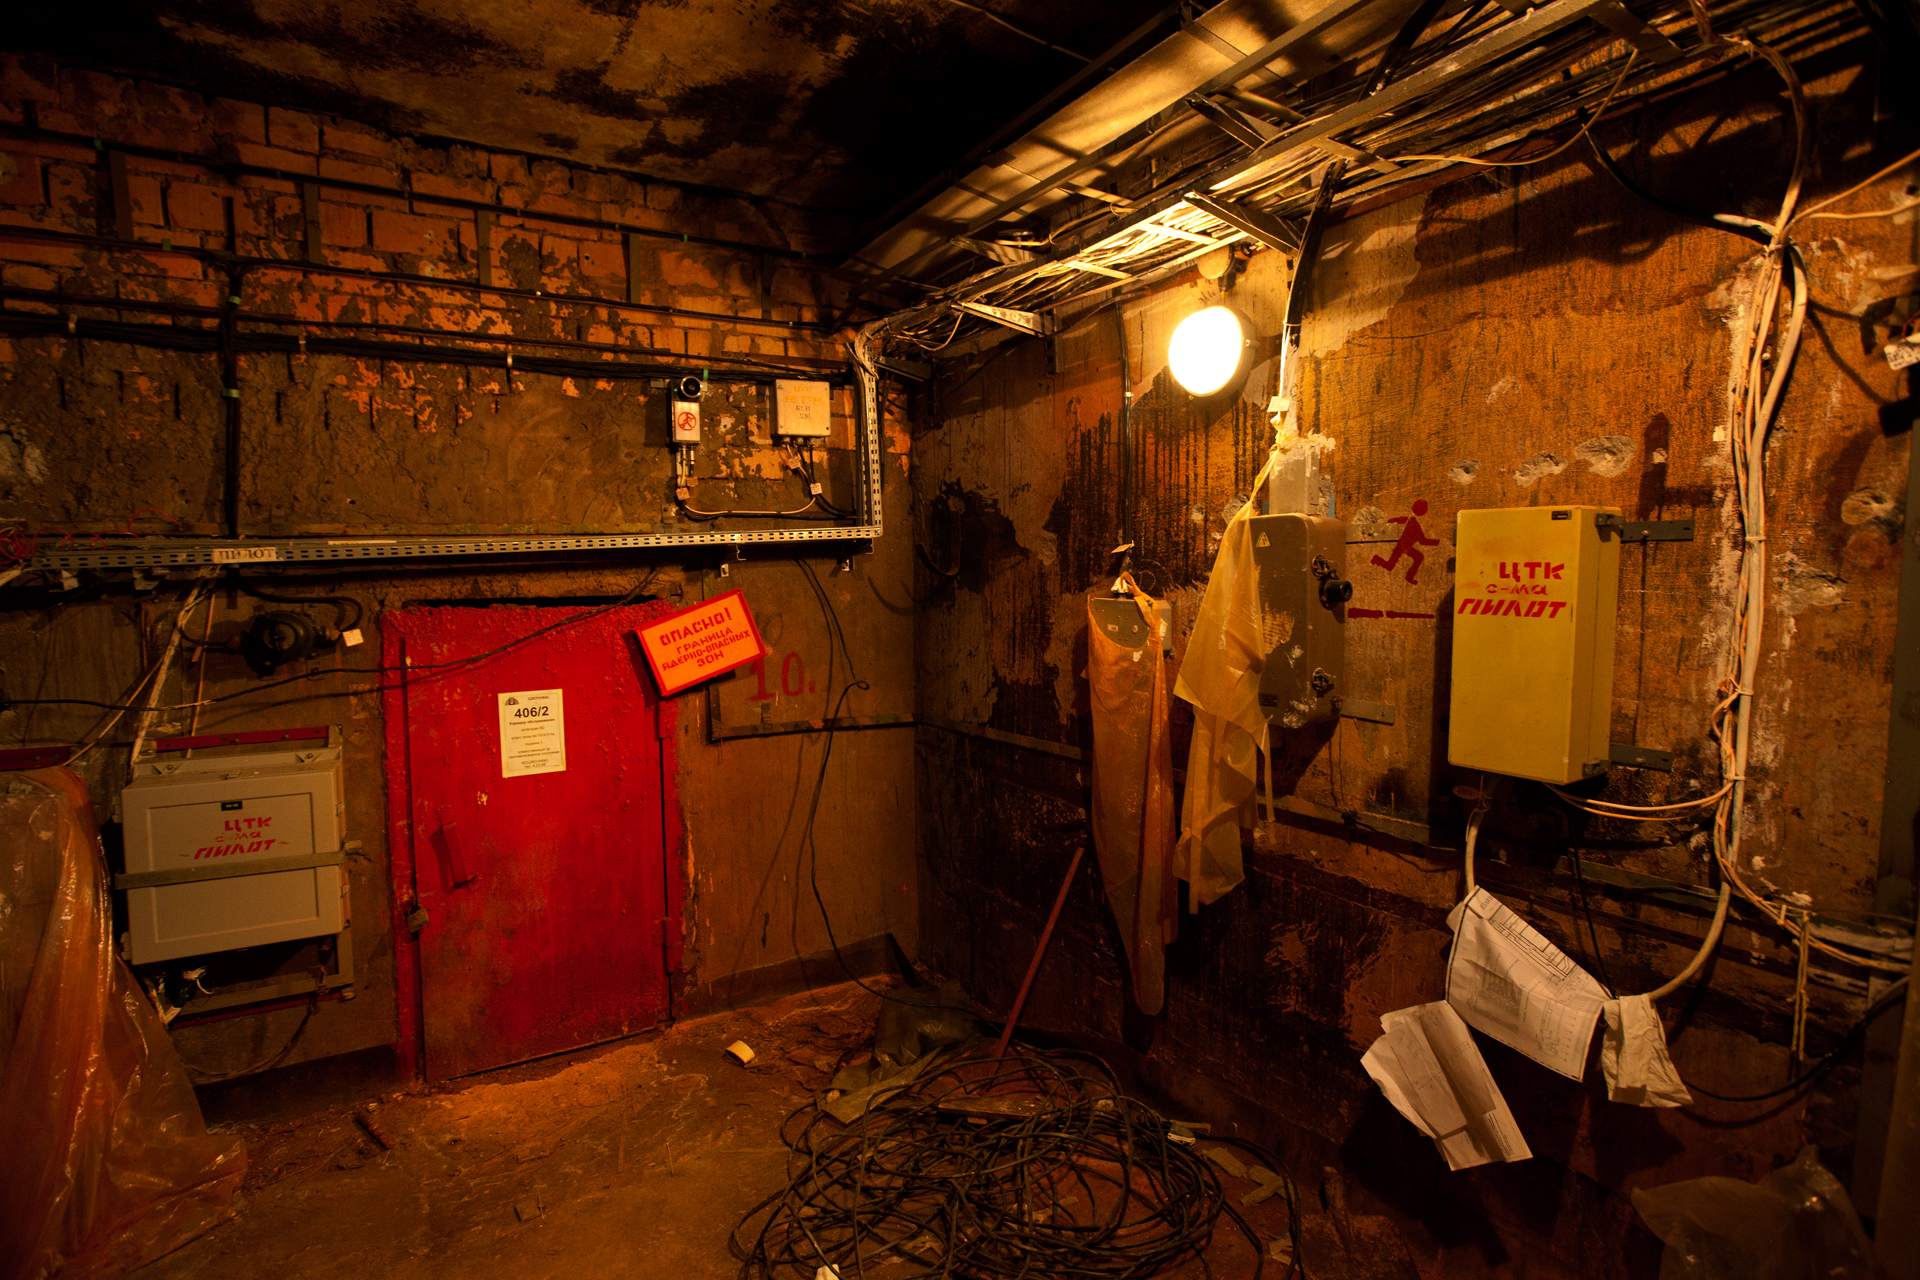 Painted in bright red, a heavy metal door protects the under-reactor department, an area with life-threatening contamination.  Chernobyl Nuclear Power Plant, Ukraine